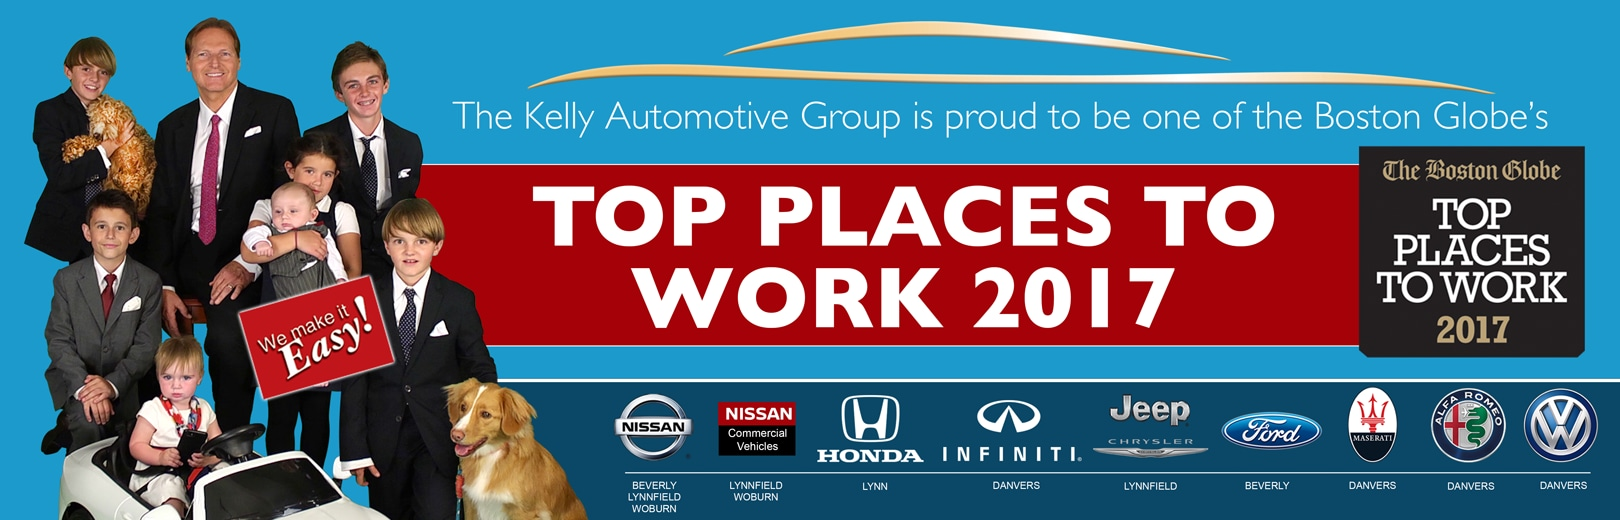 Kelly Auto Group - Named To The Boston Globe's Top Places To Work List in 2017